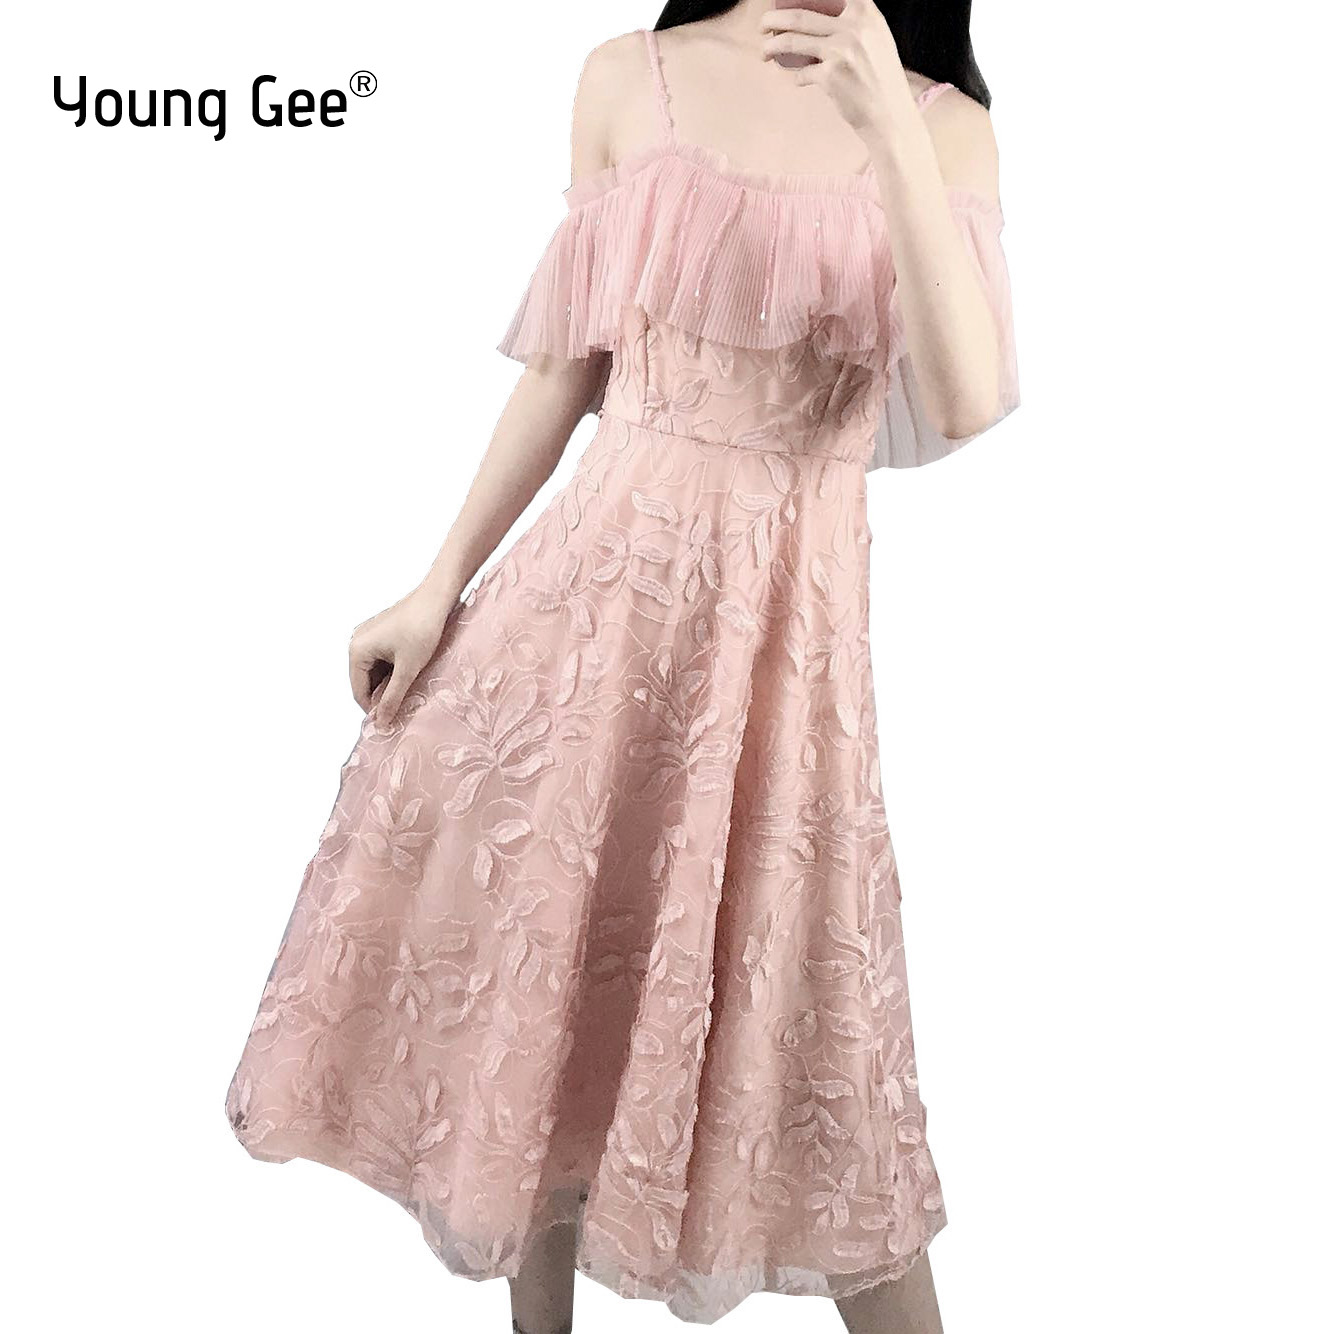 Young Gee Women Elegant Lace Floral Embroidery Midi Dresses Sexy Spaghetti Strap Crystal Beading Pink Off